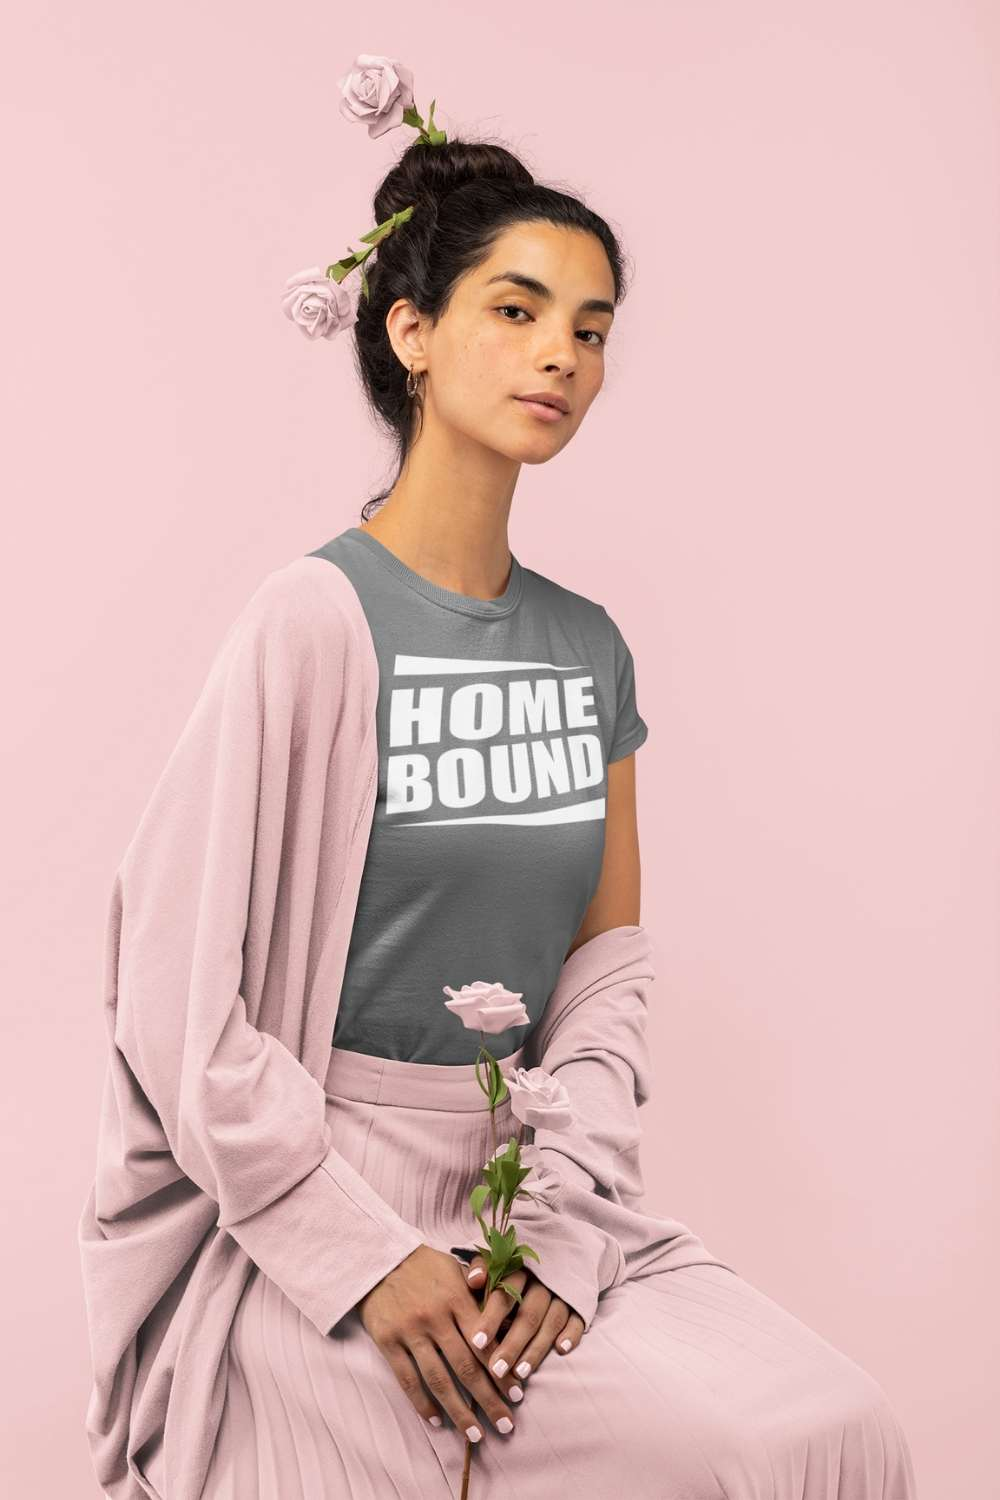 Homebound tee shirt.